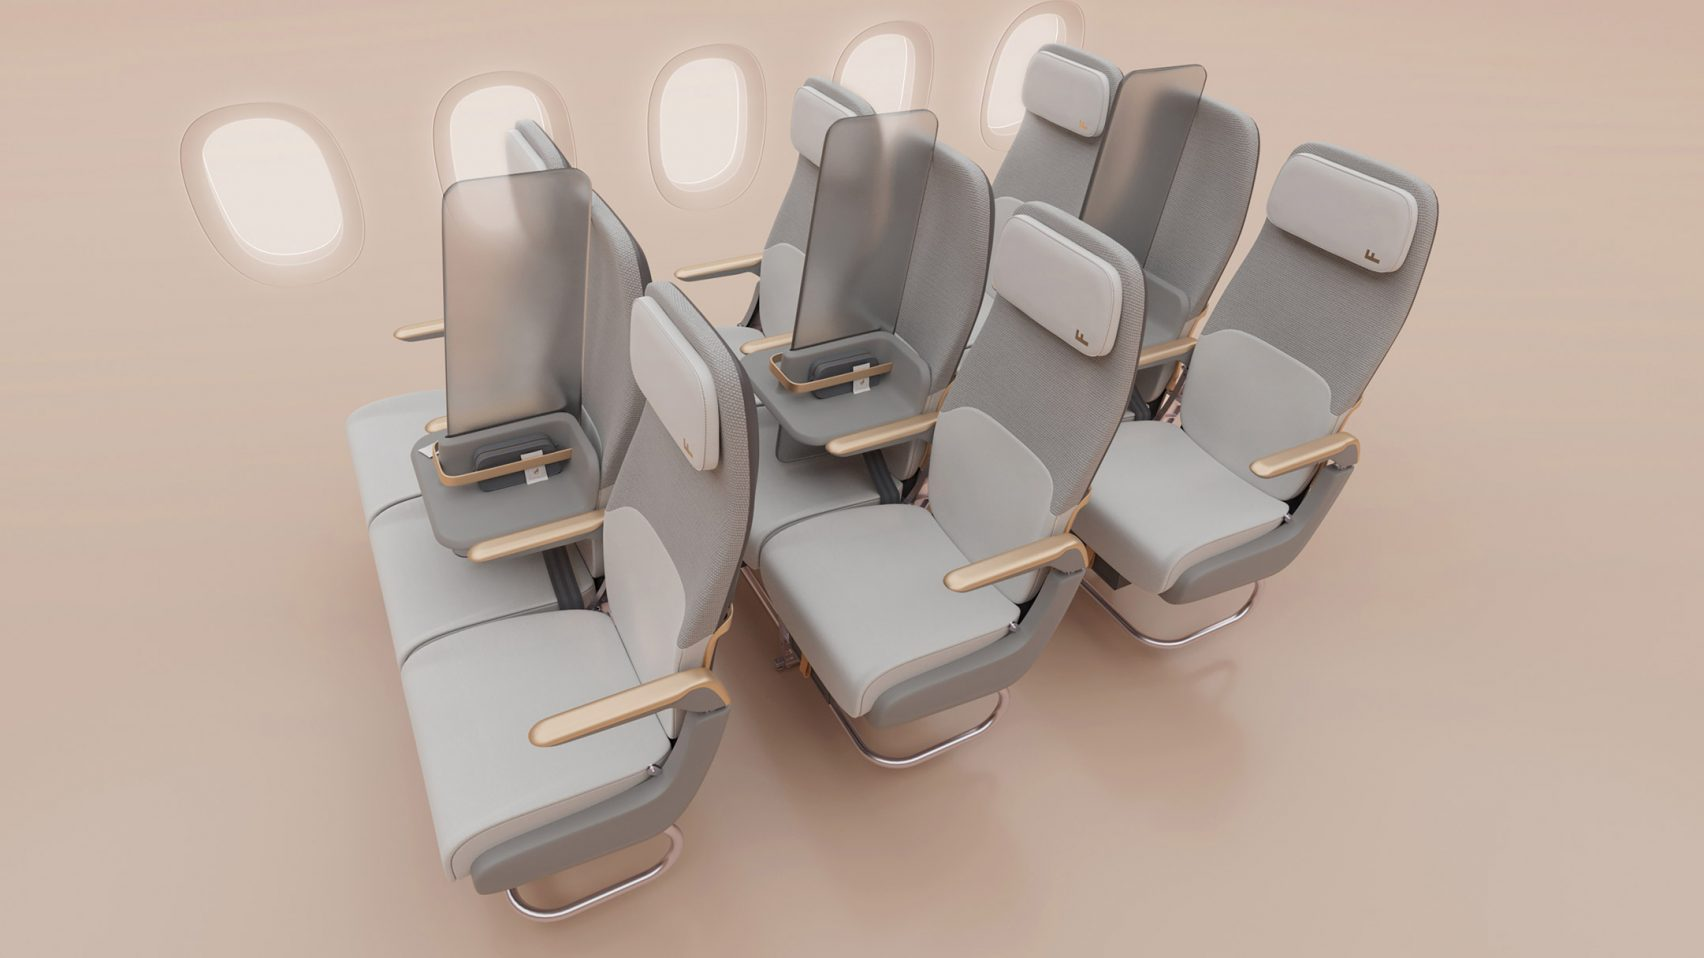 Factorydesign proposes Isolation screen for social distancing on planes - This Is What We Are Reading For You